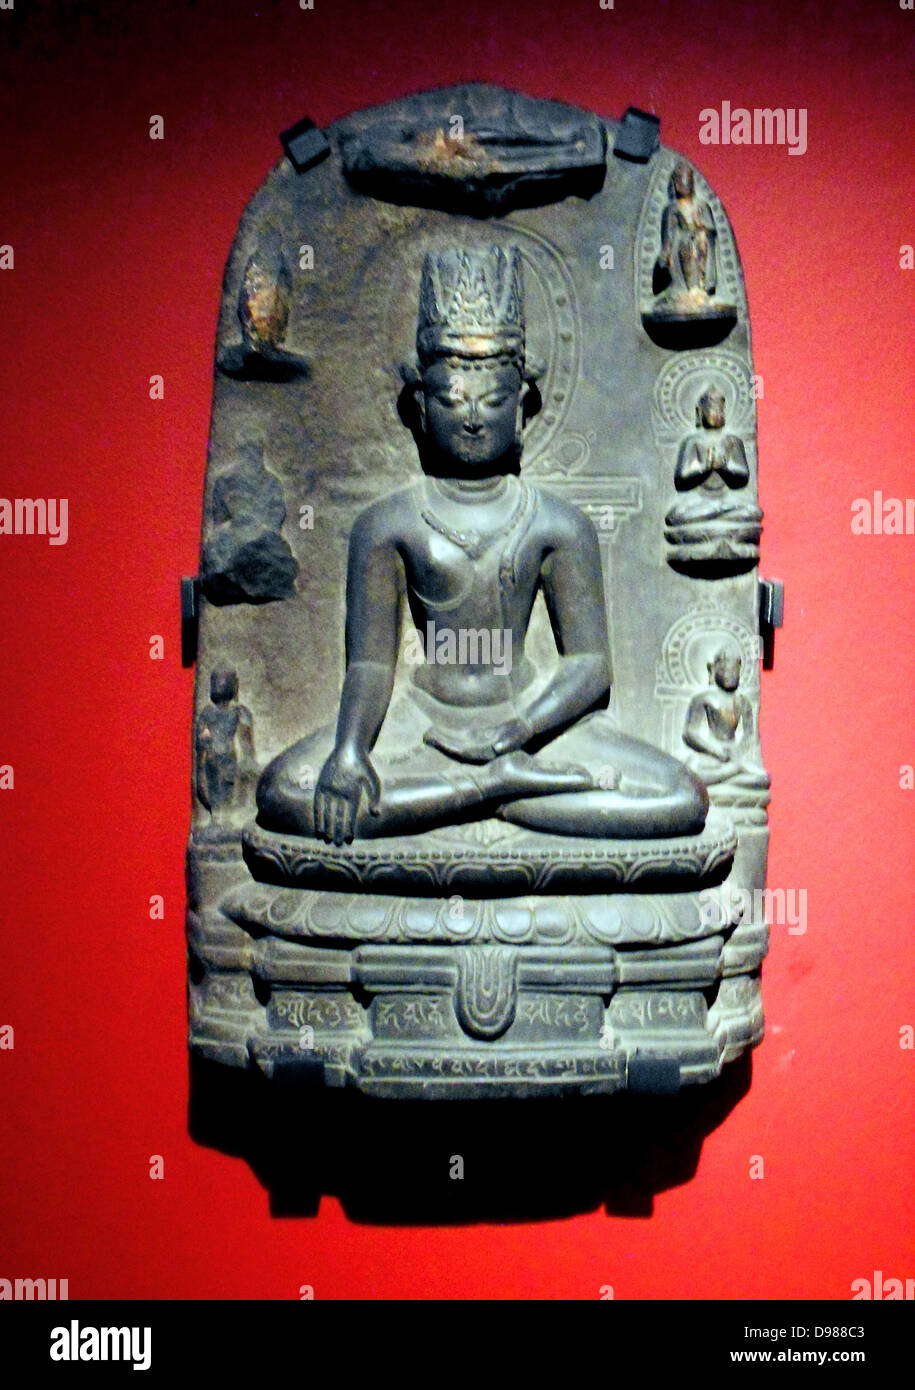 Bodisattva in stone from Bengal 900-1100. - Stock Image